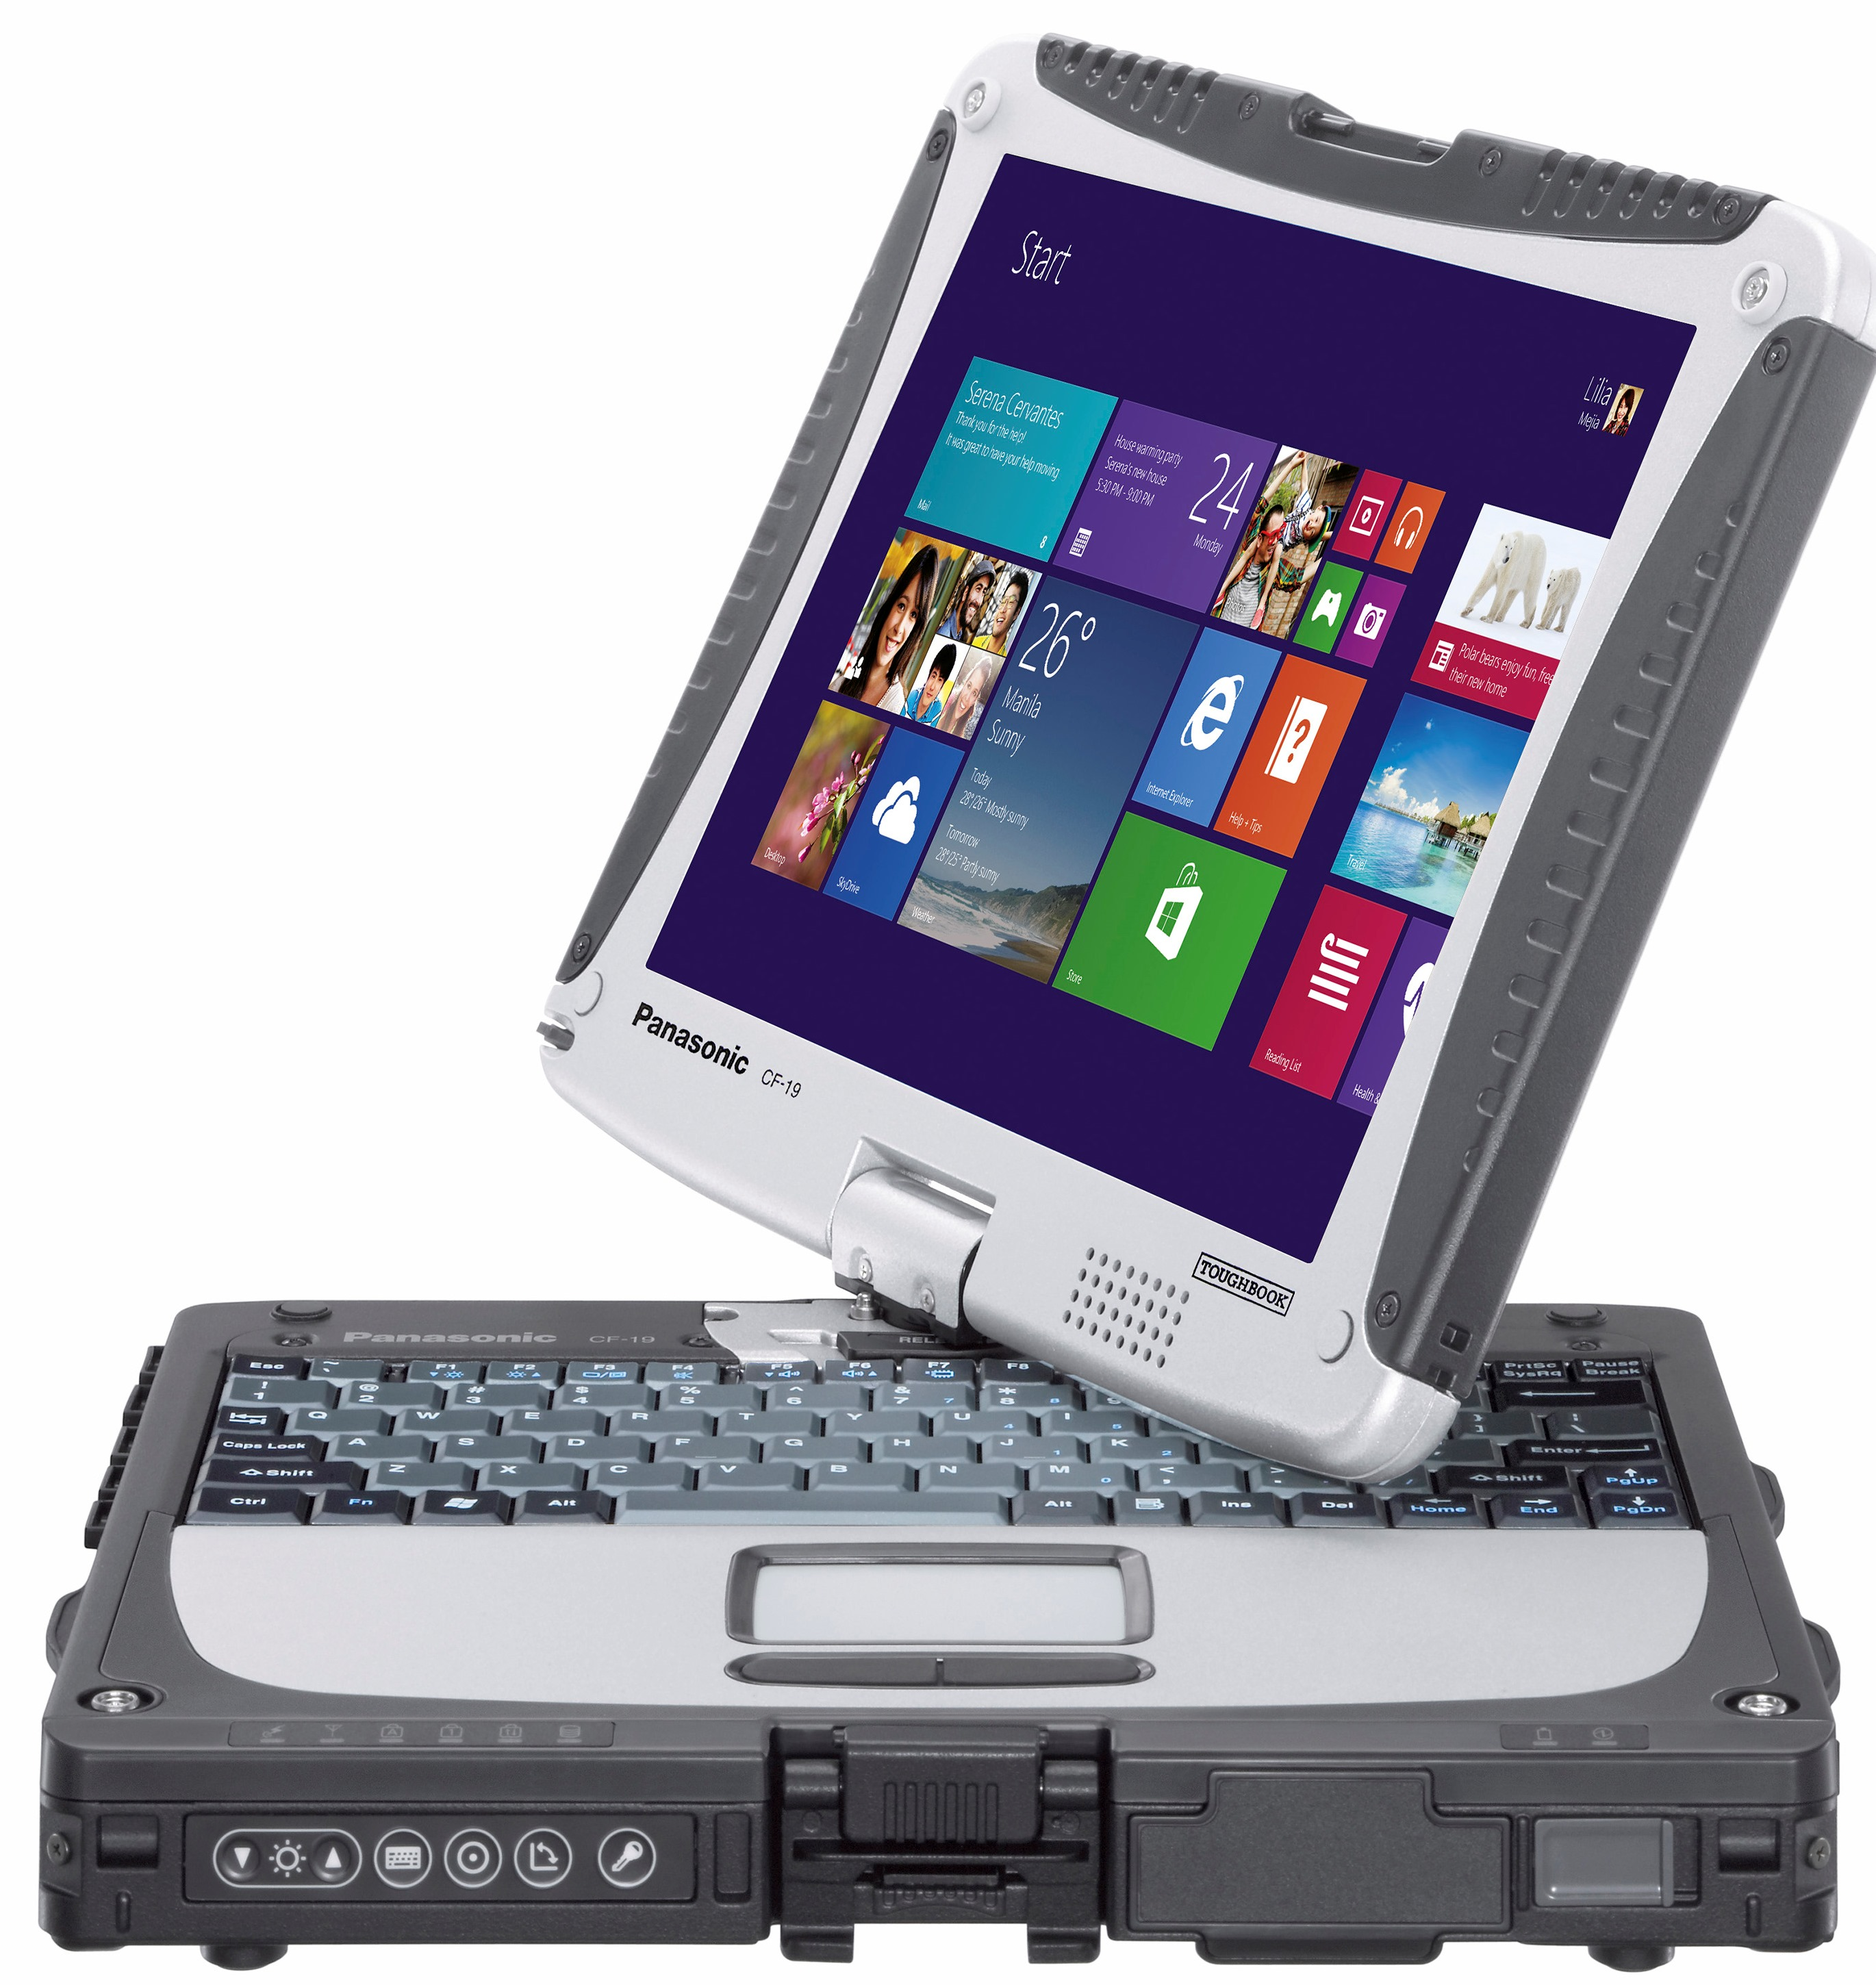 Refurbsihed Panasonic Toughbook CF-19